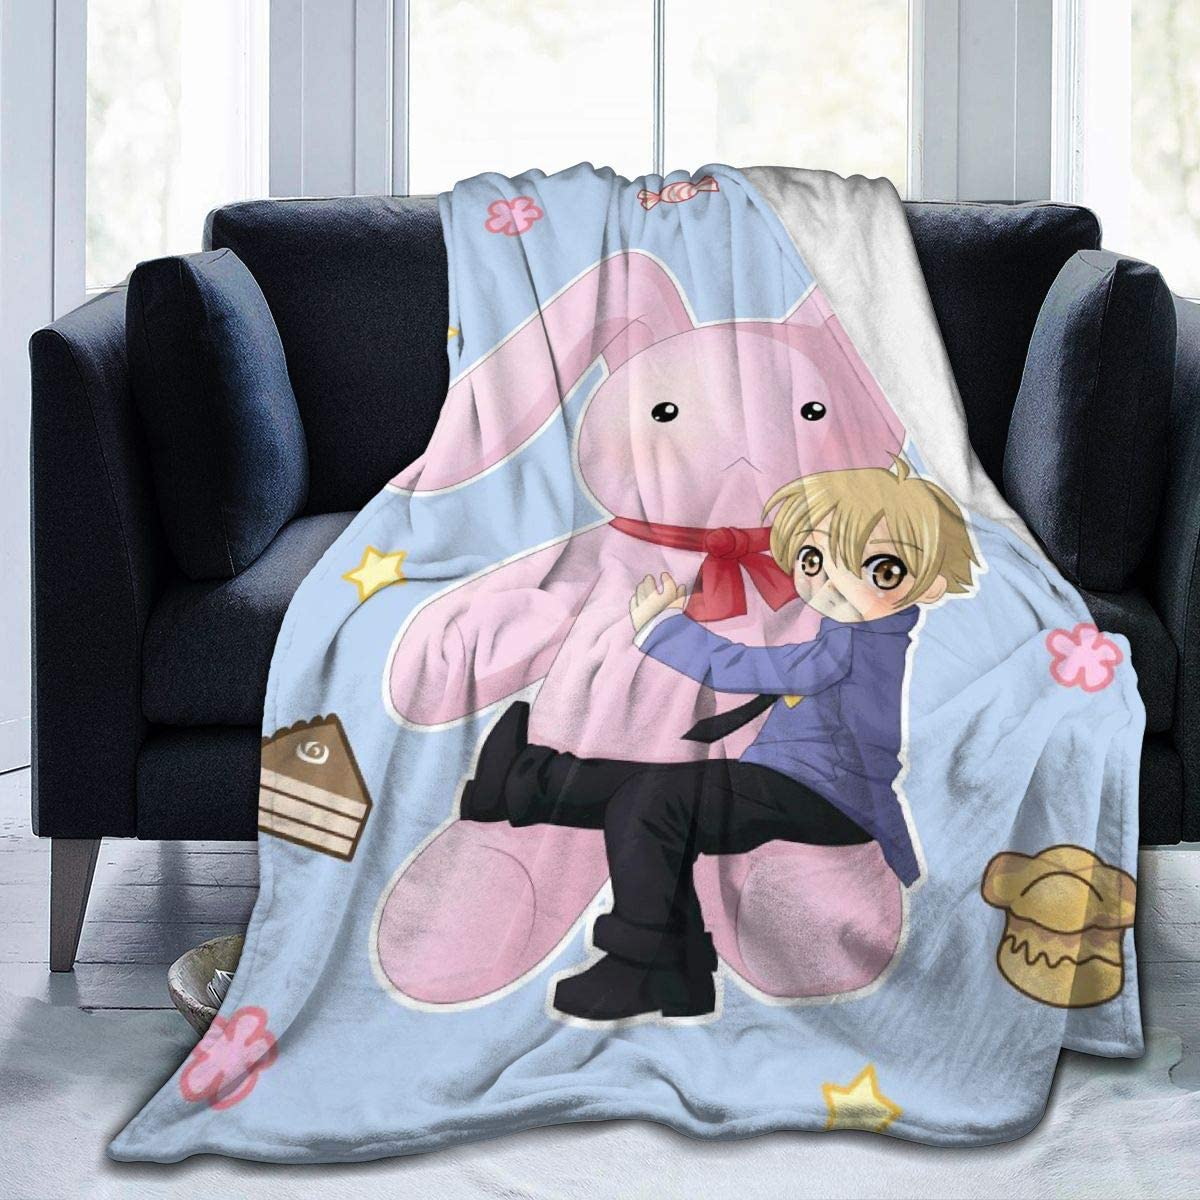 Darkt Ouran High School Host Club Luxury Throw Blanket Flannel Air Conditioning Blankets for Bed Sofa Home Decor Office Travel Gifts 50x40 Inch for Child